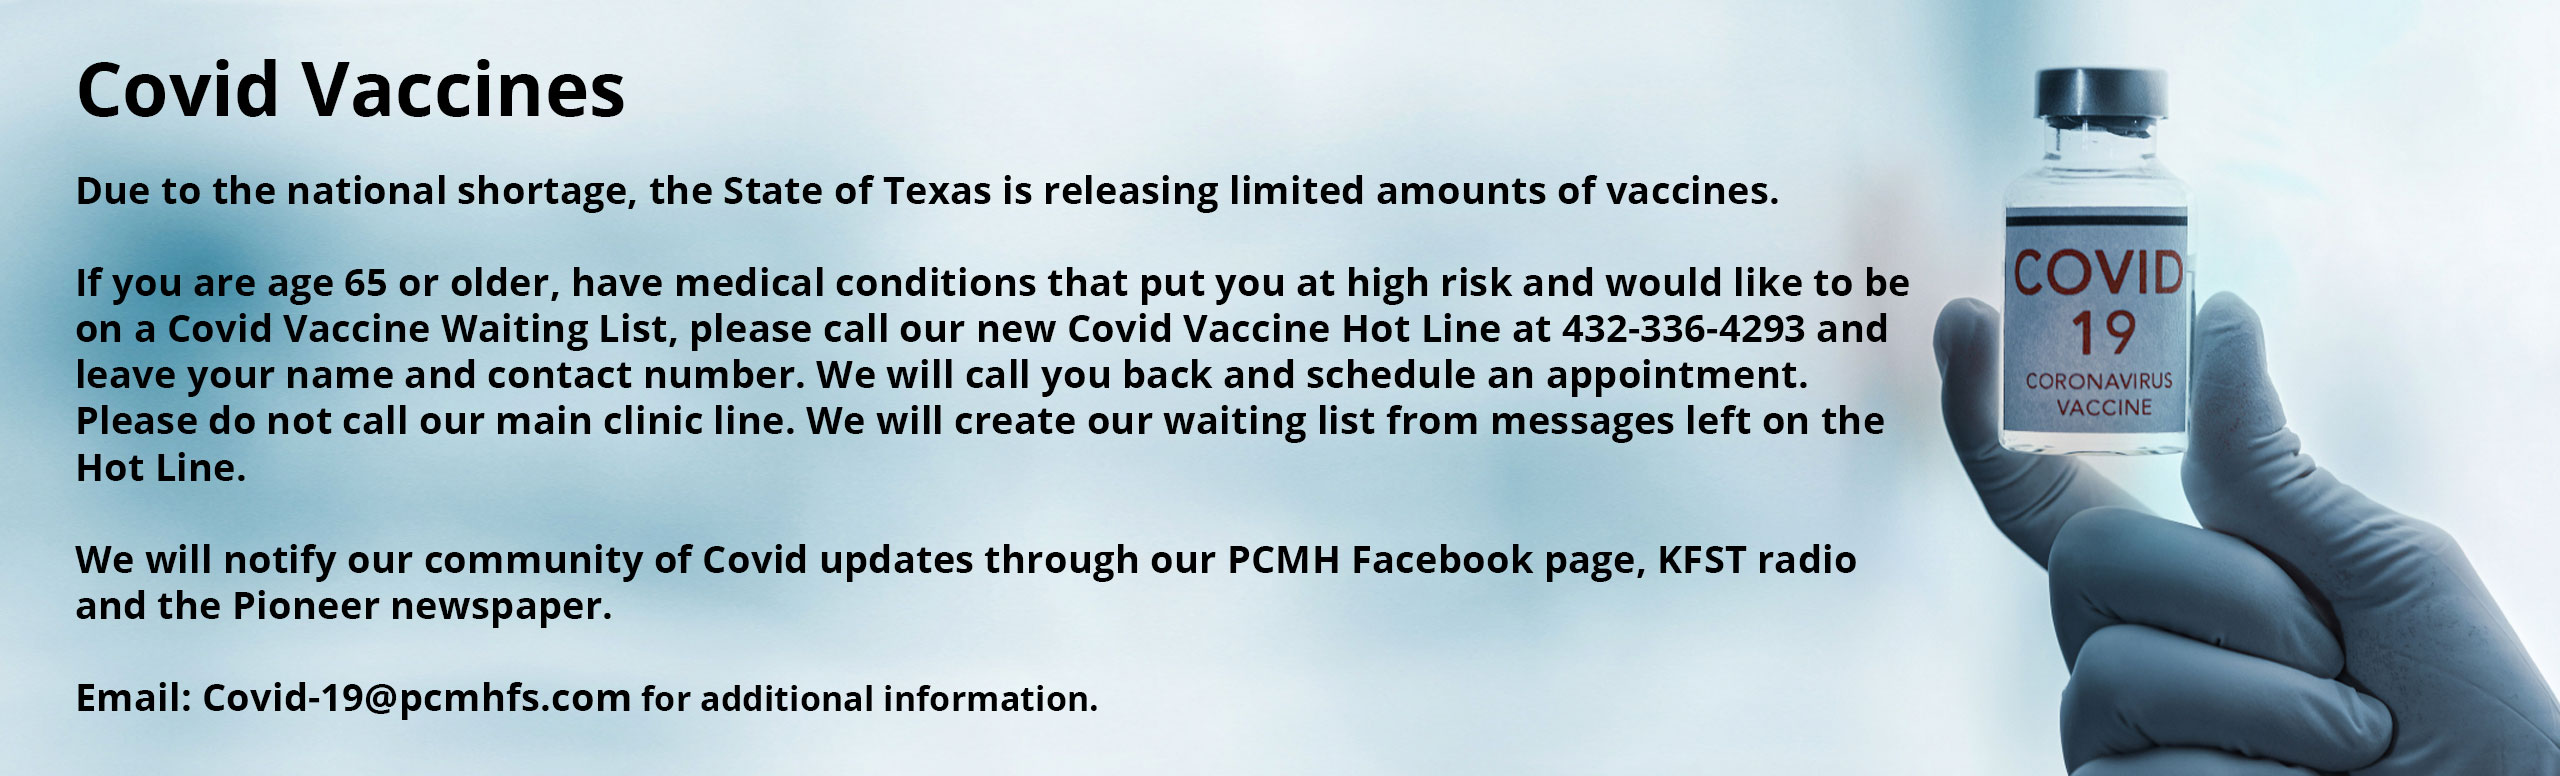 Covid Vaccines   Due to the national shortage, the State of Texas is releasing limited amounts of vaccines.   If you are age 65 or older, have medical conditions that put you at high risk and would like to be on a Covid Vaccine Waiting List, please call our new Covid Vaccine Hot Line at 432-336-4293 and leave your name and contact number. We will call you back and schedule an appointment.  Please do not call our main clinic line. We will create our waiting list from messages left on the Hot Line.    We will notify our community of Covid updates through our PCMH Facebook page, KFST radio  and the Pioneer newspaper.    Email: Covid-19@pcmhfs.com for additional information.